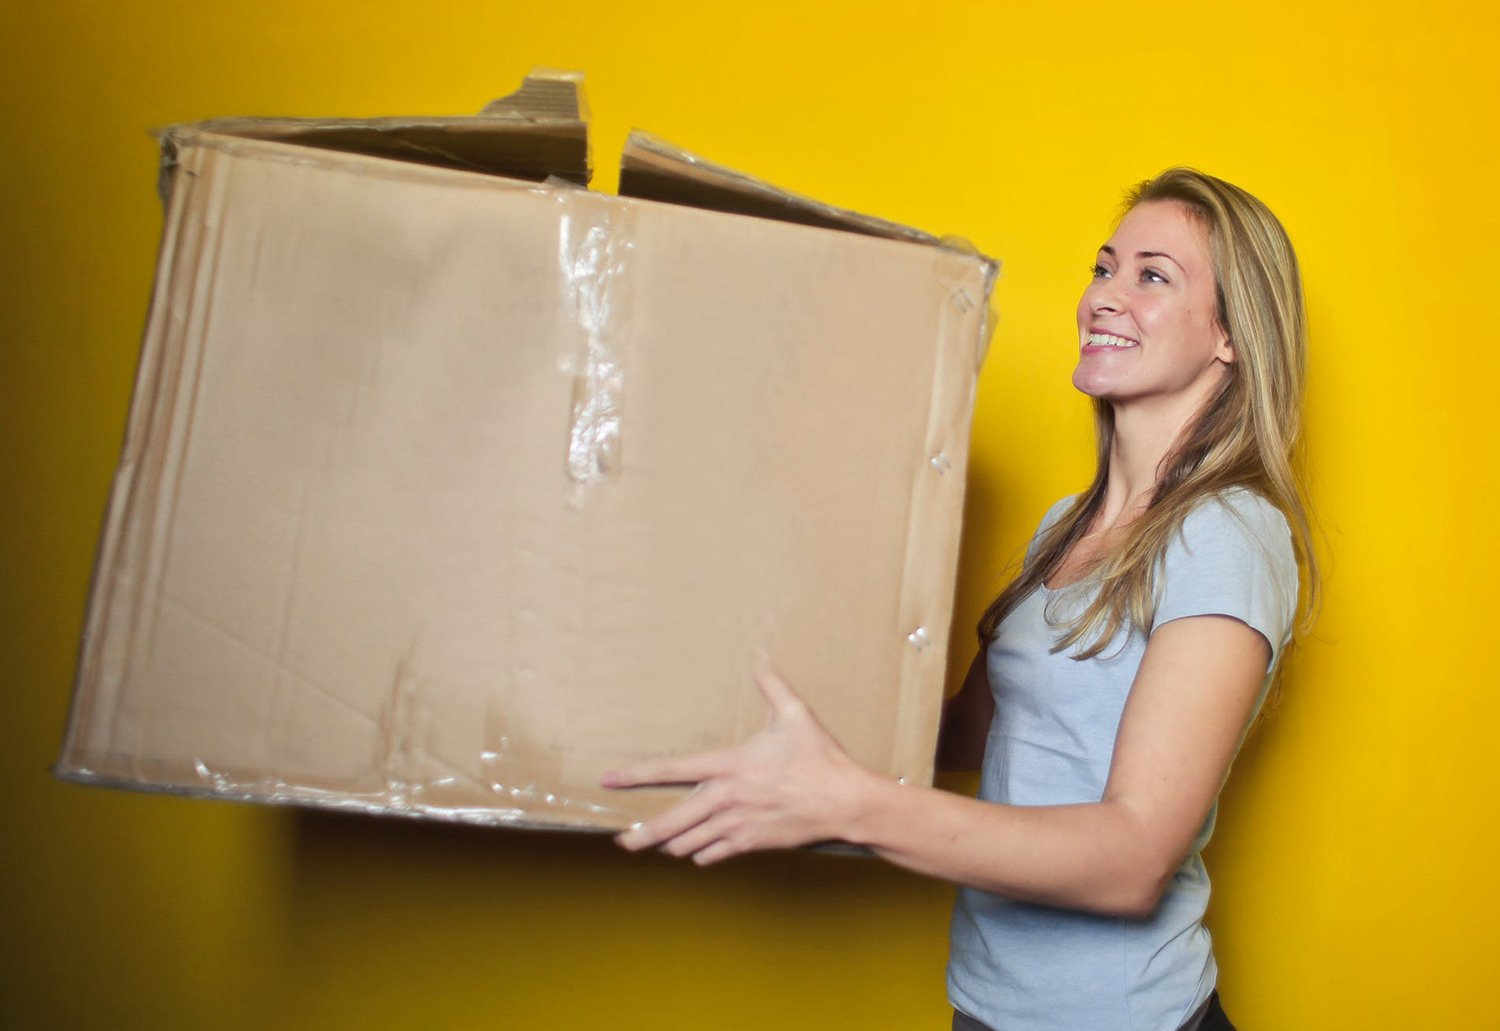 How to make moving hassle free for you